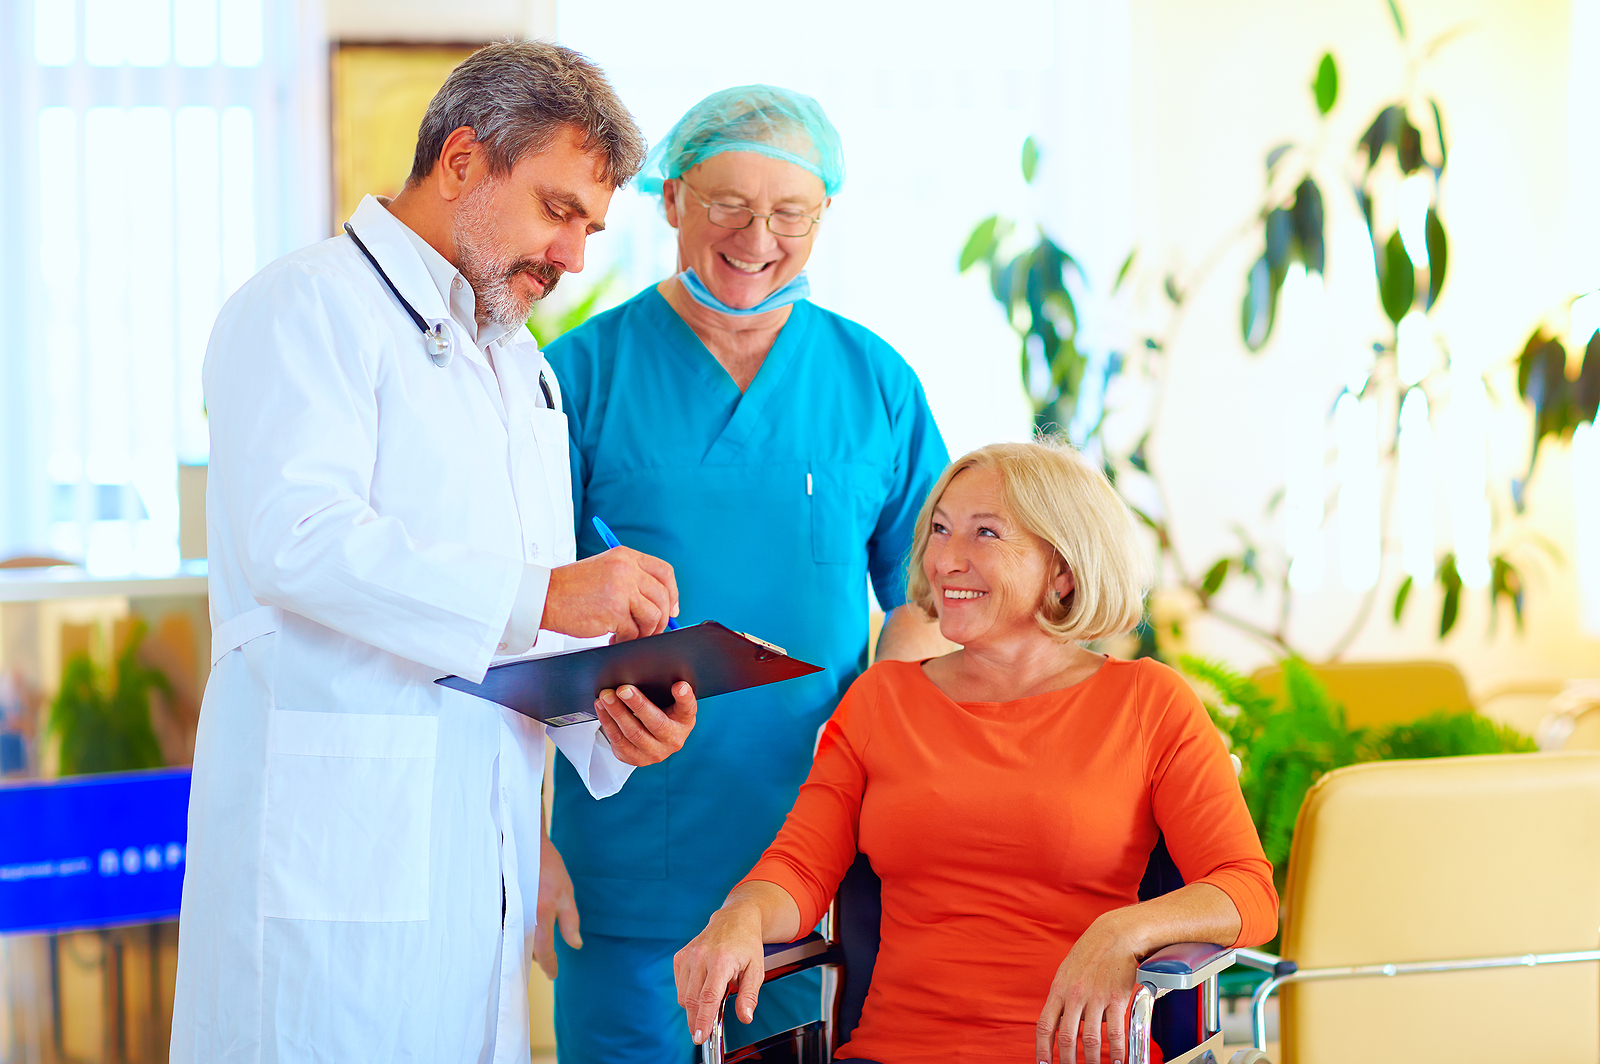 A smiling doctor and surgeon consult a smiling patient about treatment before discharging her from the hospital. Learn about Georgetown Home Care's hospital readmission reduction program.